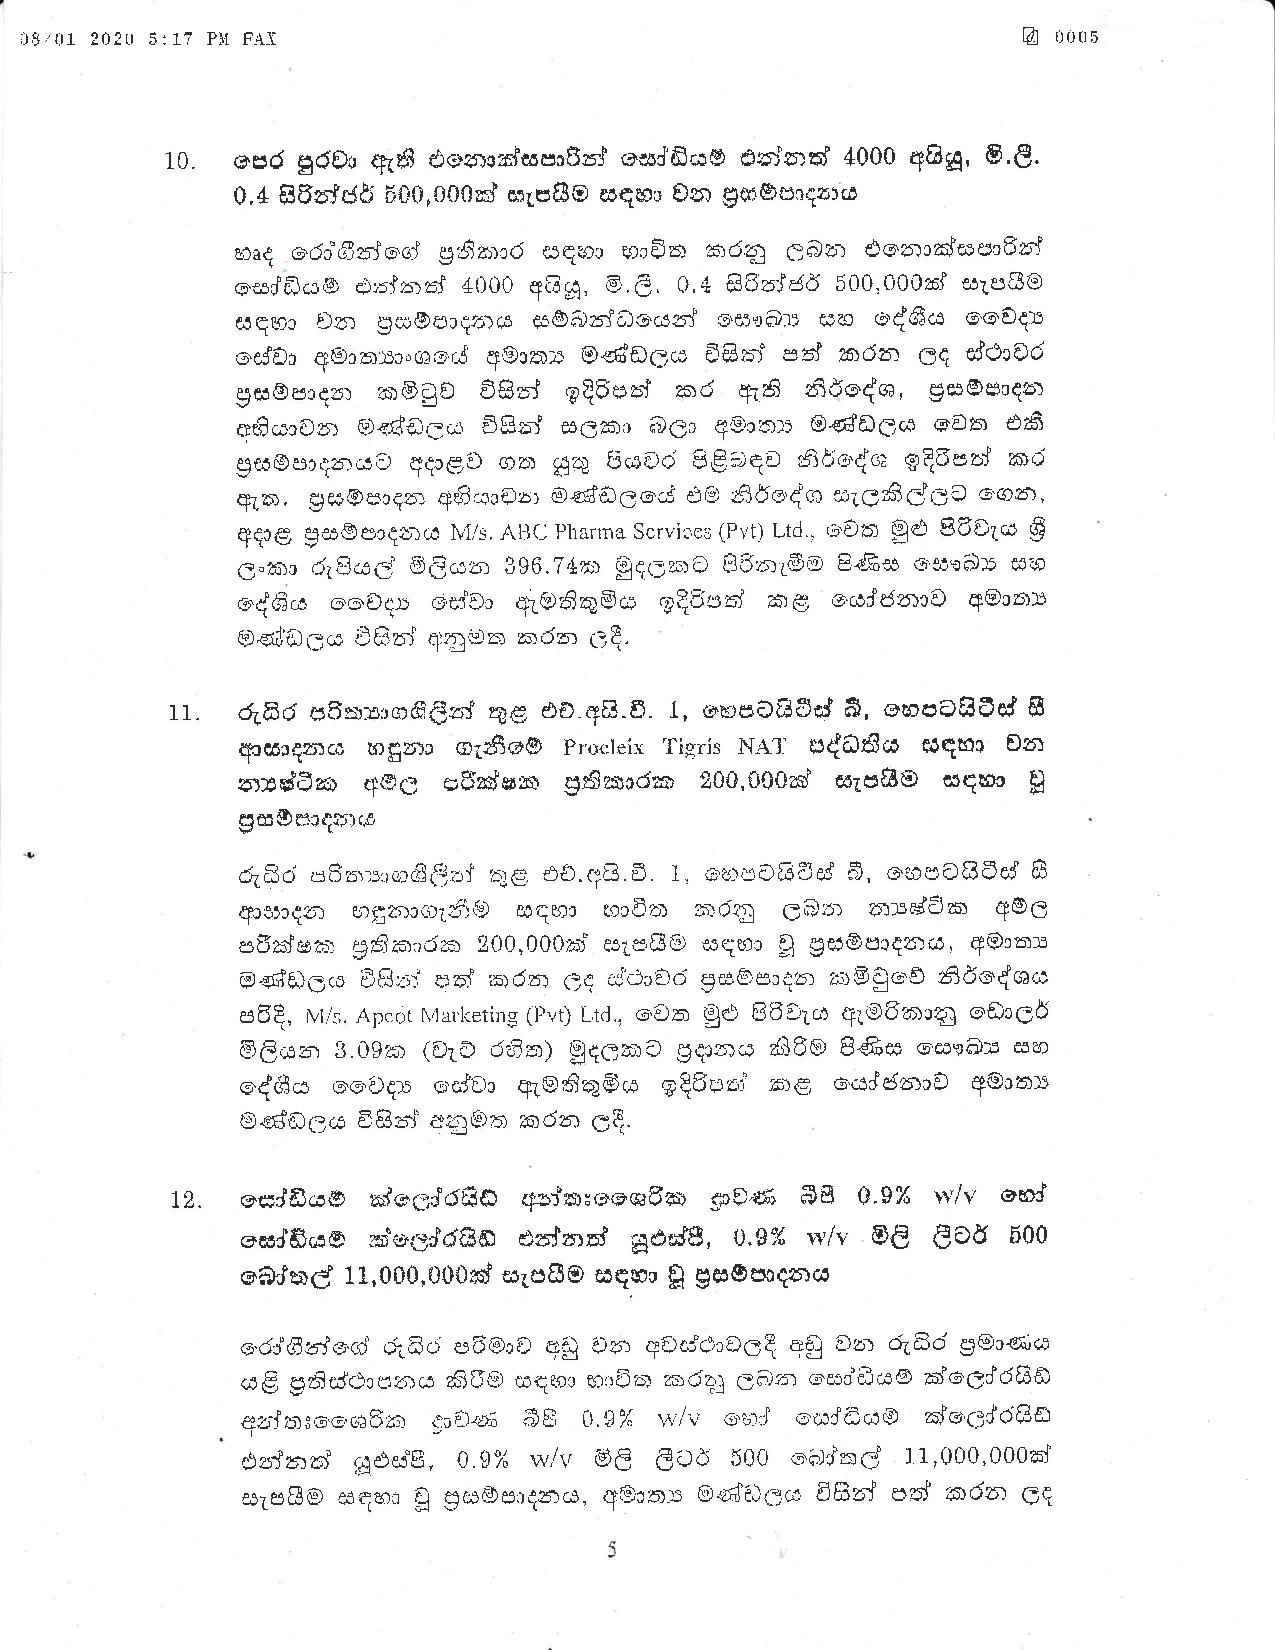 Cabinet Decision on 08.01.2020 page 005